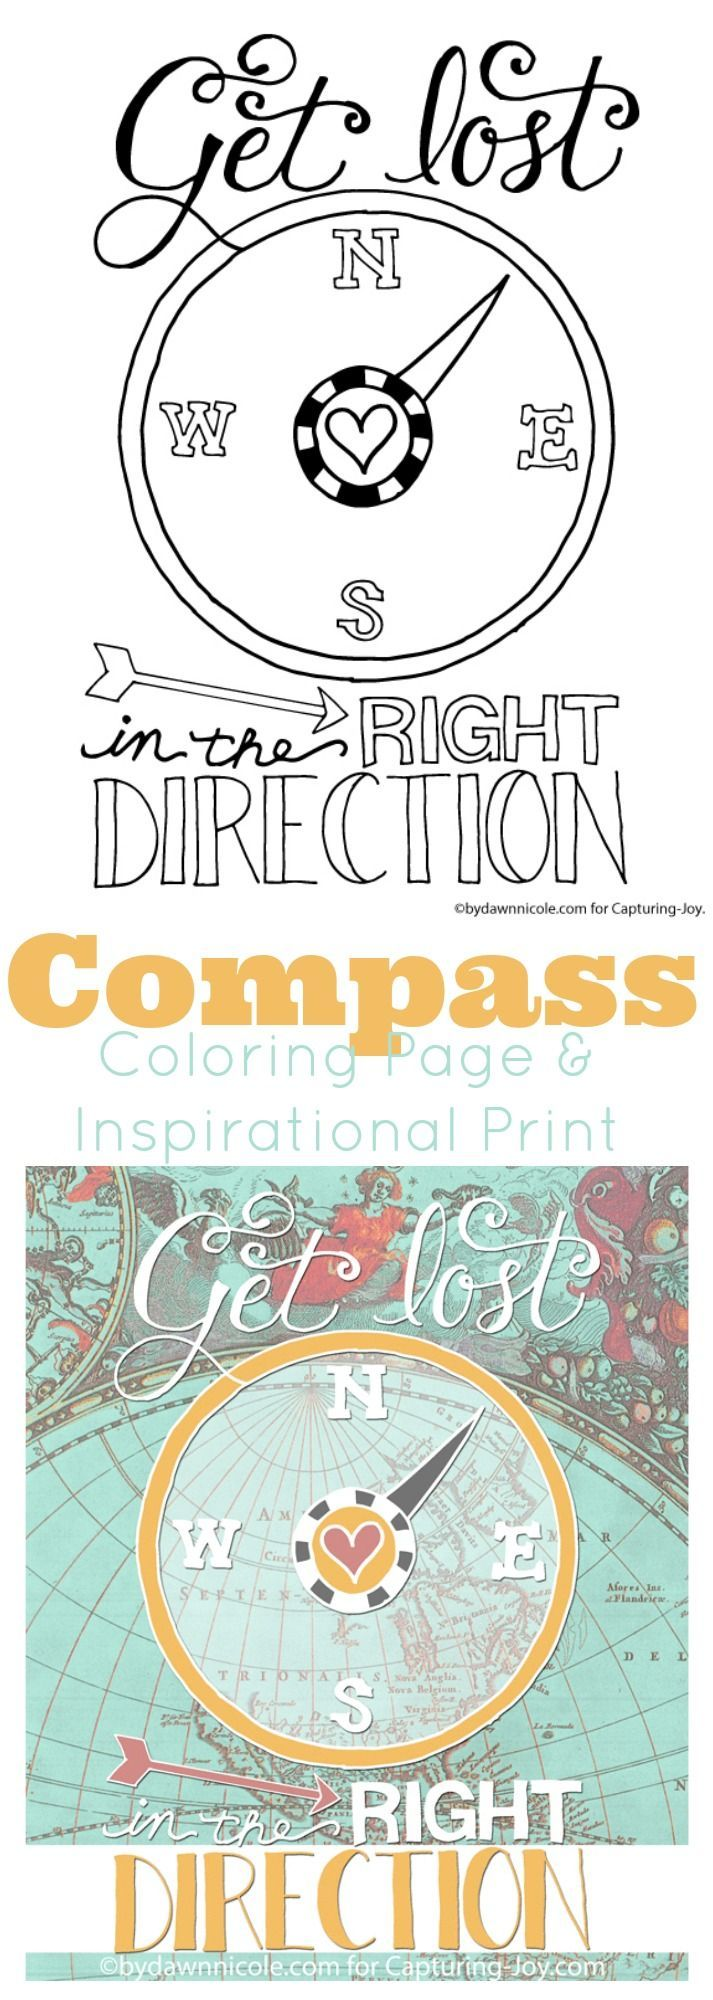 get lost in the right direction coloring page print summer